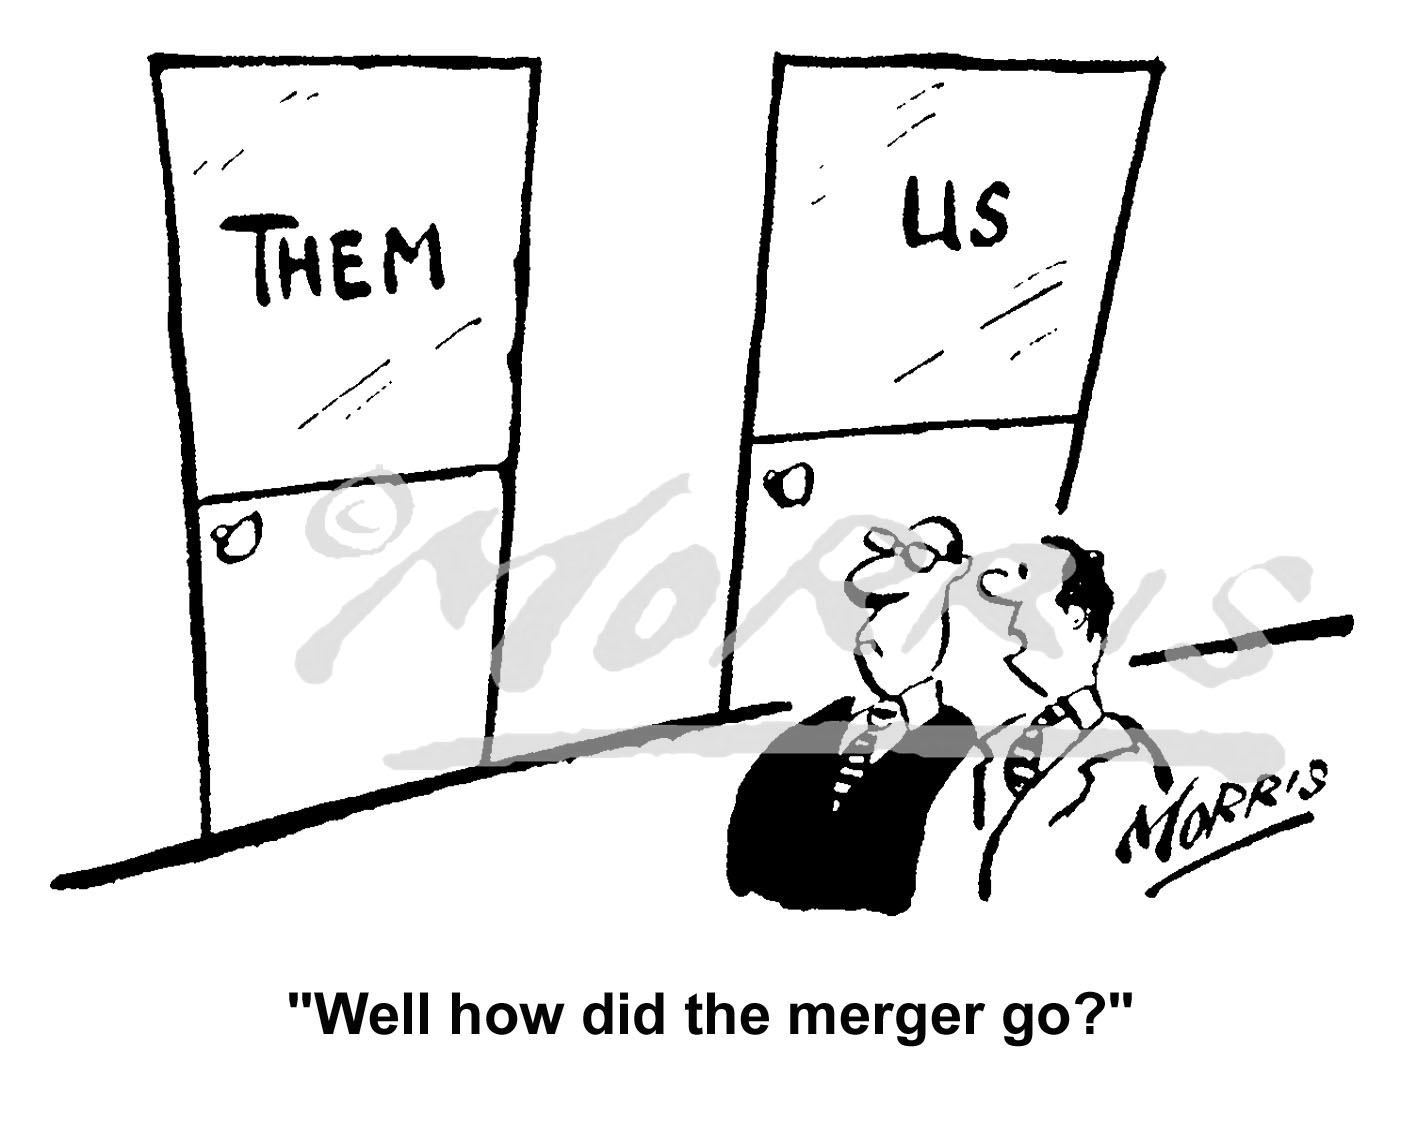 Company merger cartoon – Ref: 5126bw